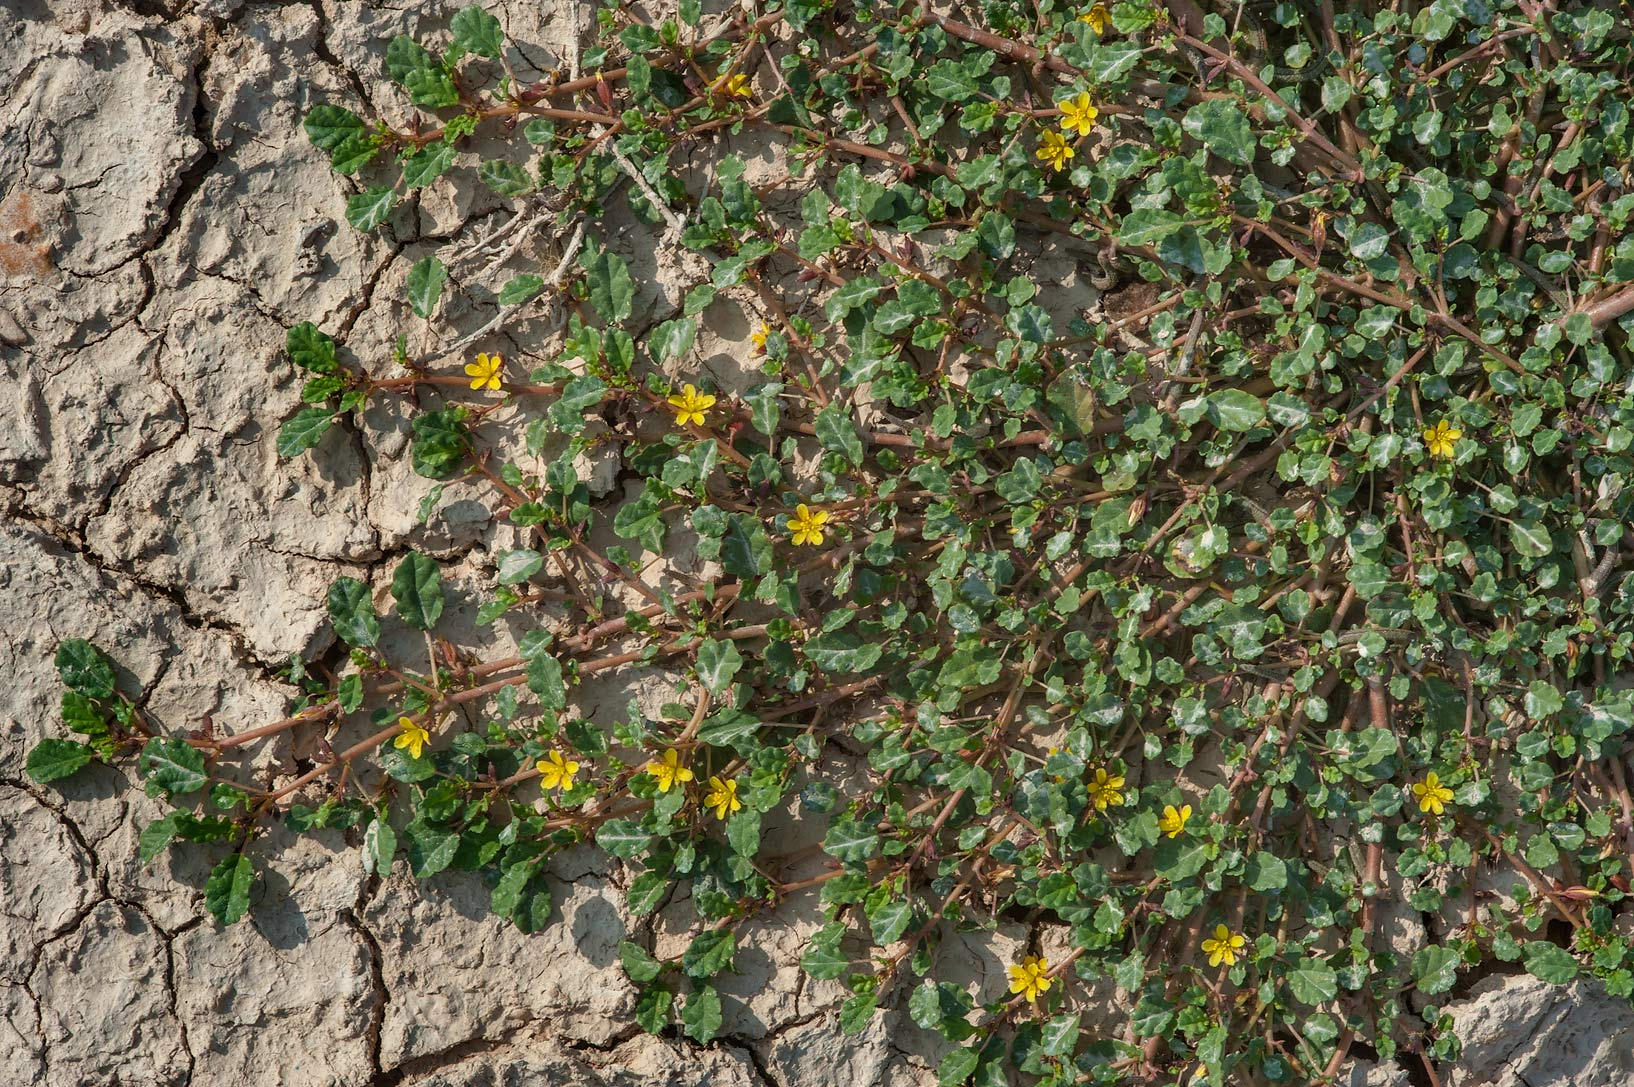 Mat of Corchorus depressus in flower on roadside of Dukhan Highway. Ash-Shahaniyah, Qatar